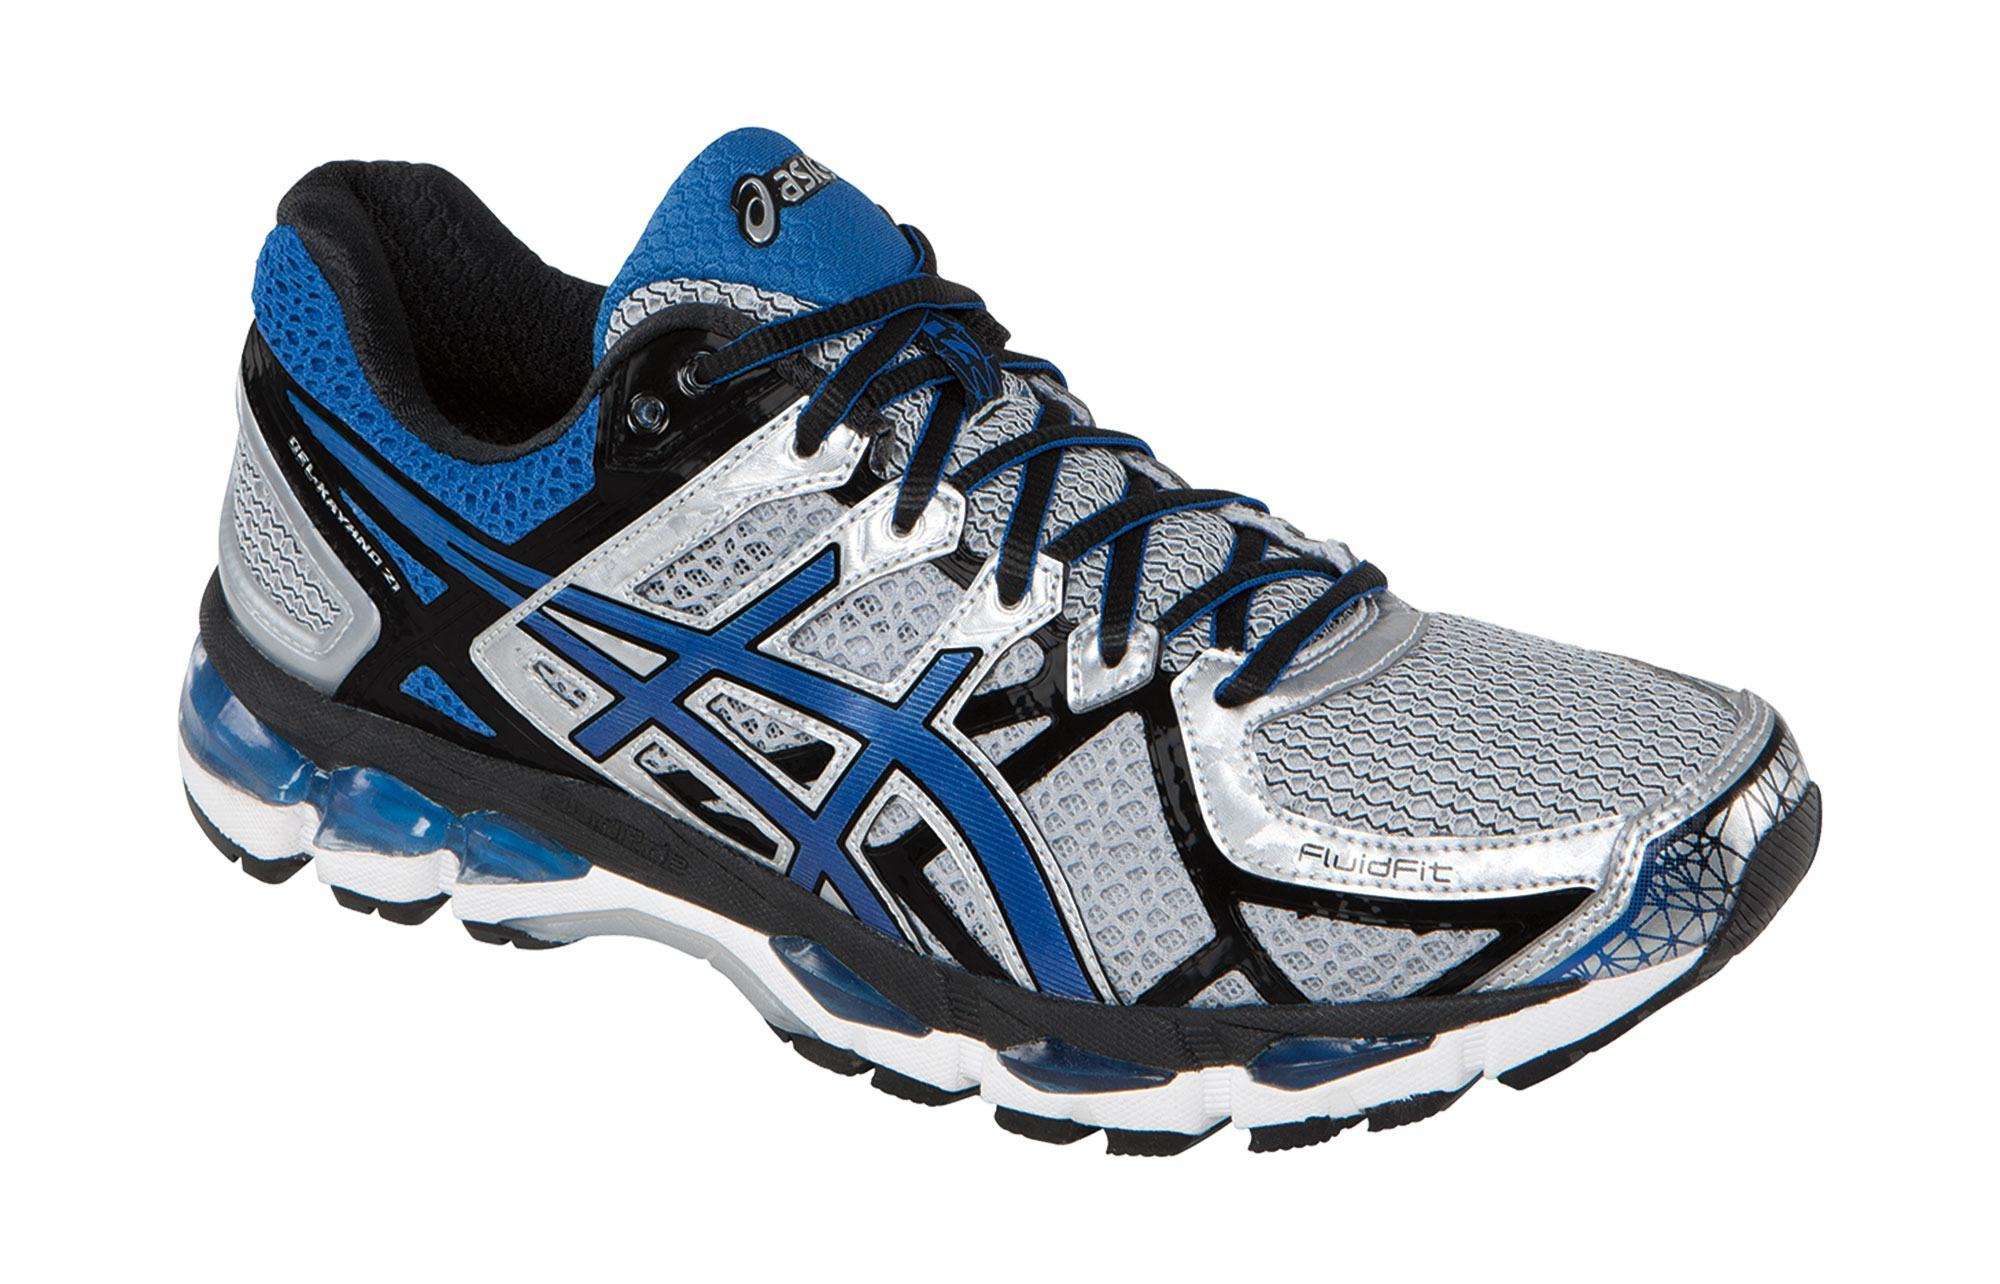 asics gel kayano 21 shoes r a cycles. Black Bedroom Furniture Sets. Home Design Ideas